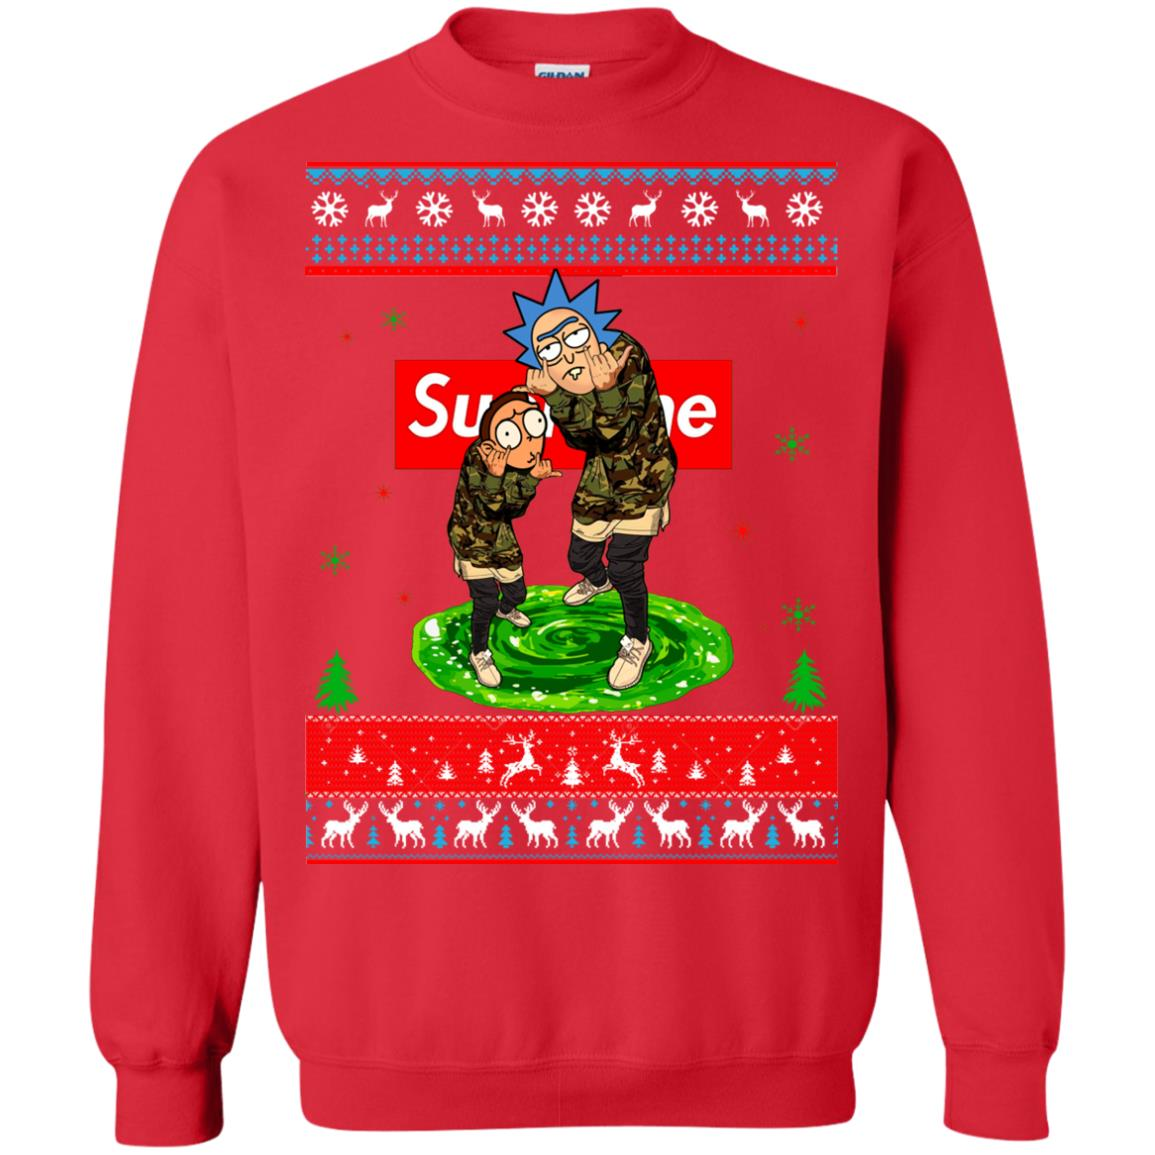 Rick and Morty Supreme Ugly Christmas Sweater, Hoodie - Rockatee